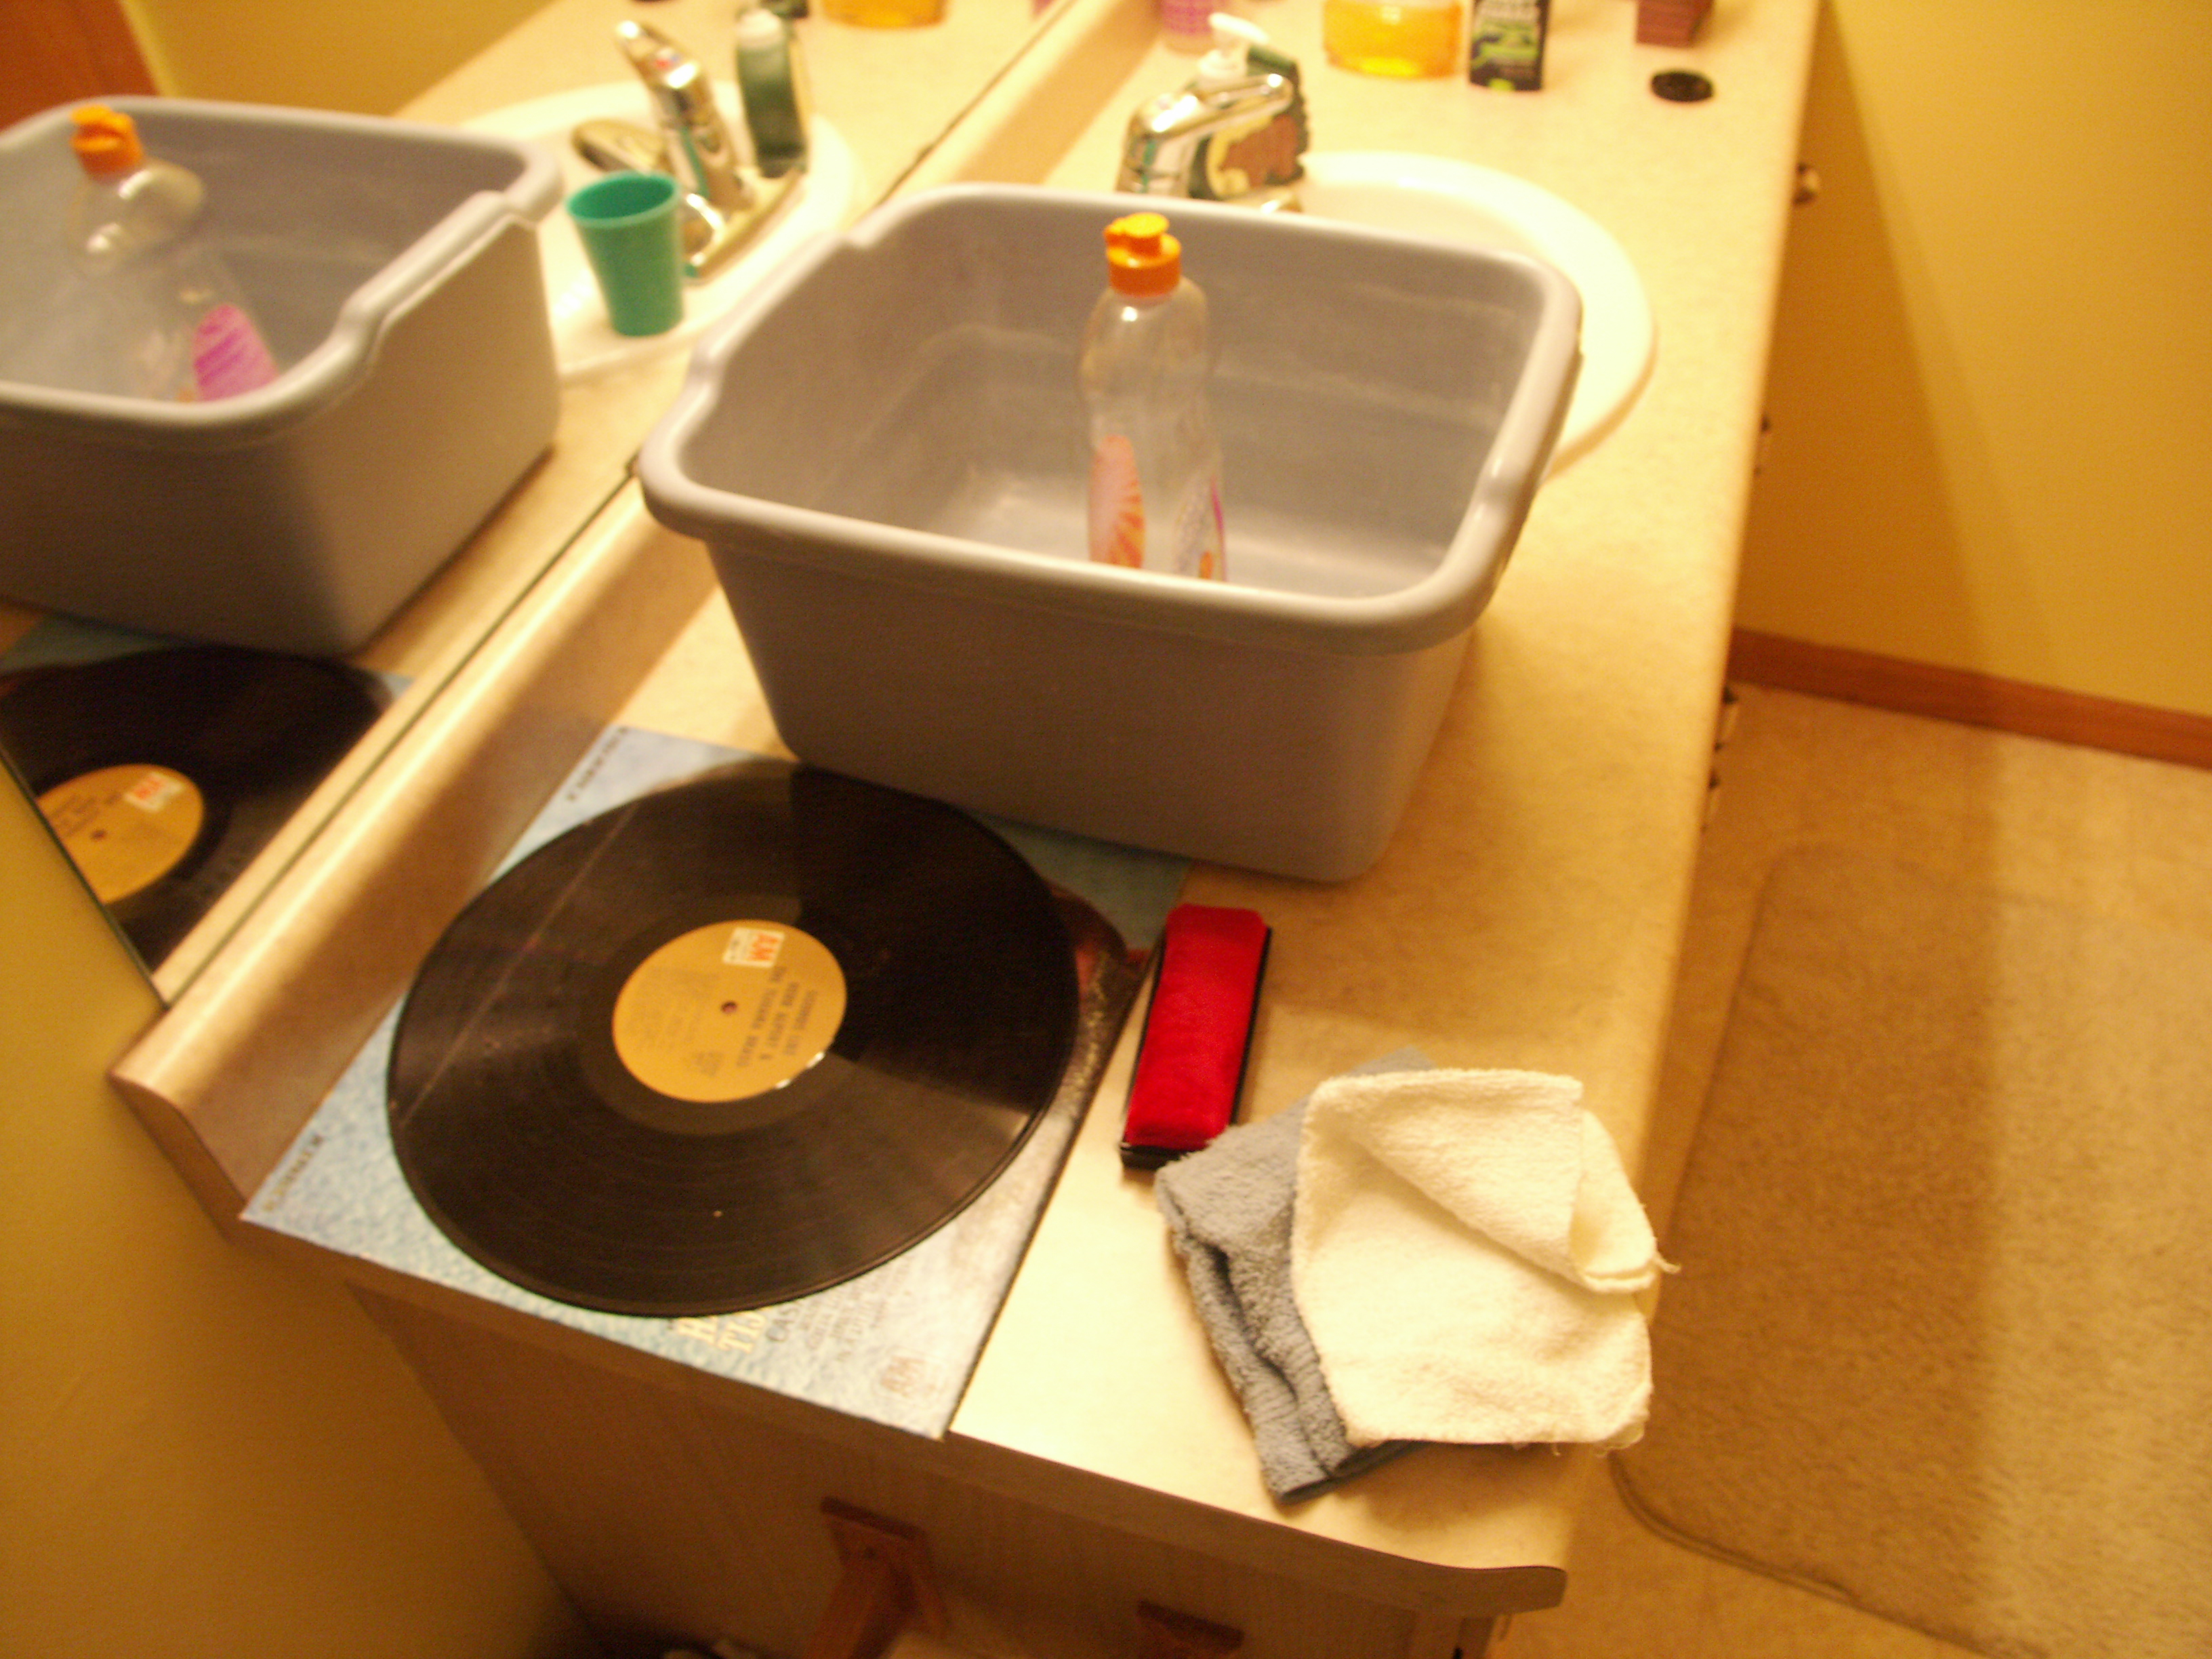 Cleaning vinyl records 6 steps with pictures picture of gather the items publicscrutiny Choice Image